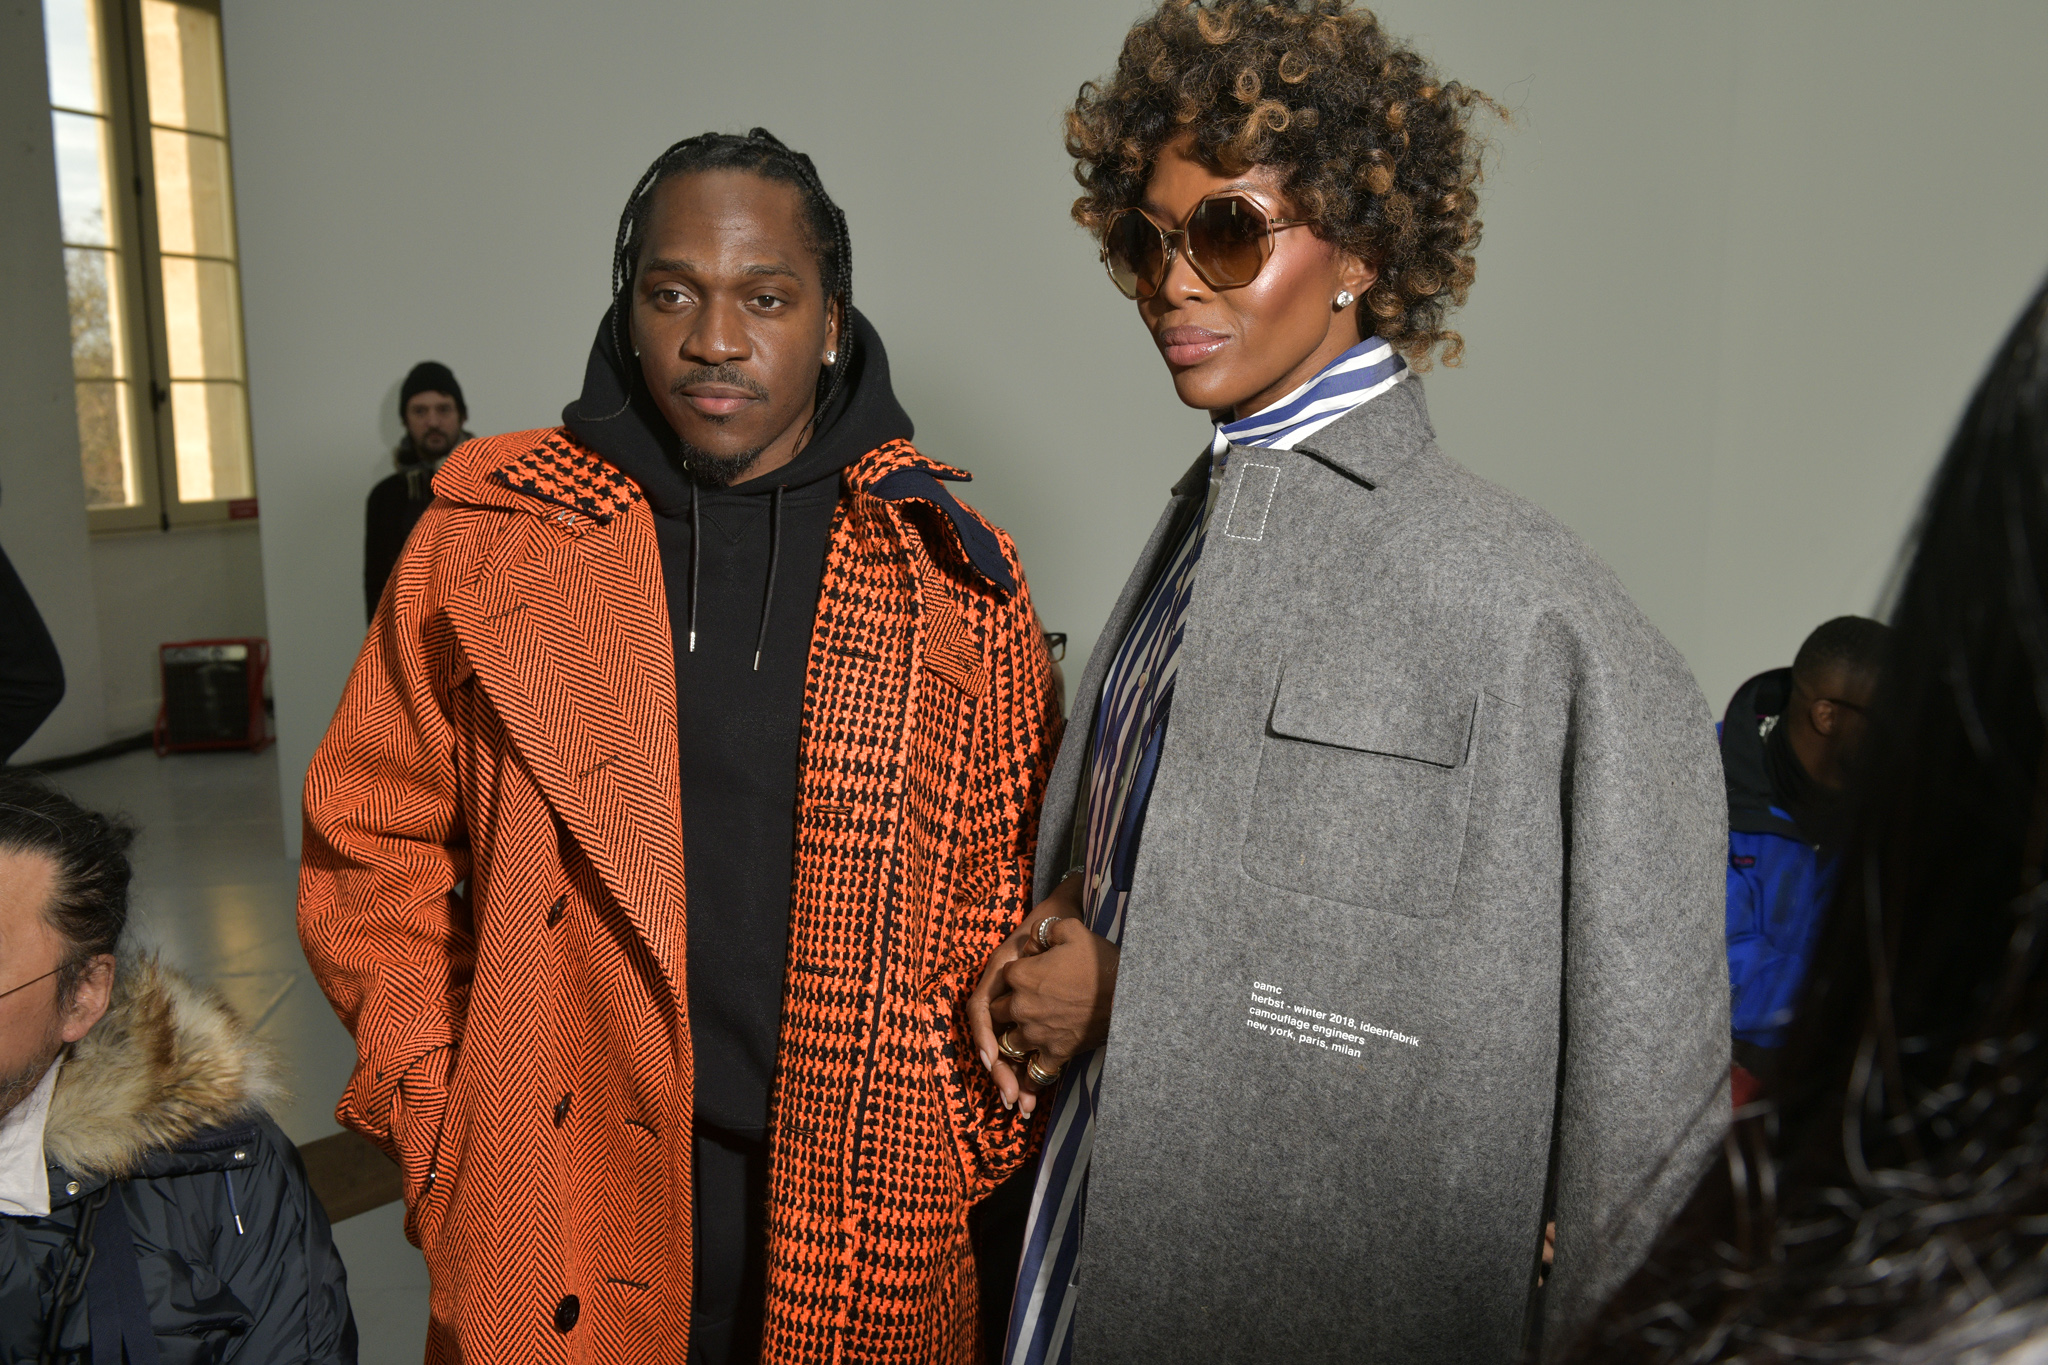 Pusha-T and Naomi Campbell